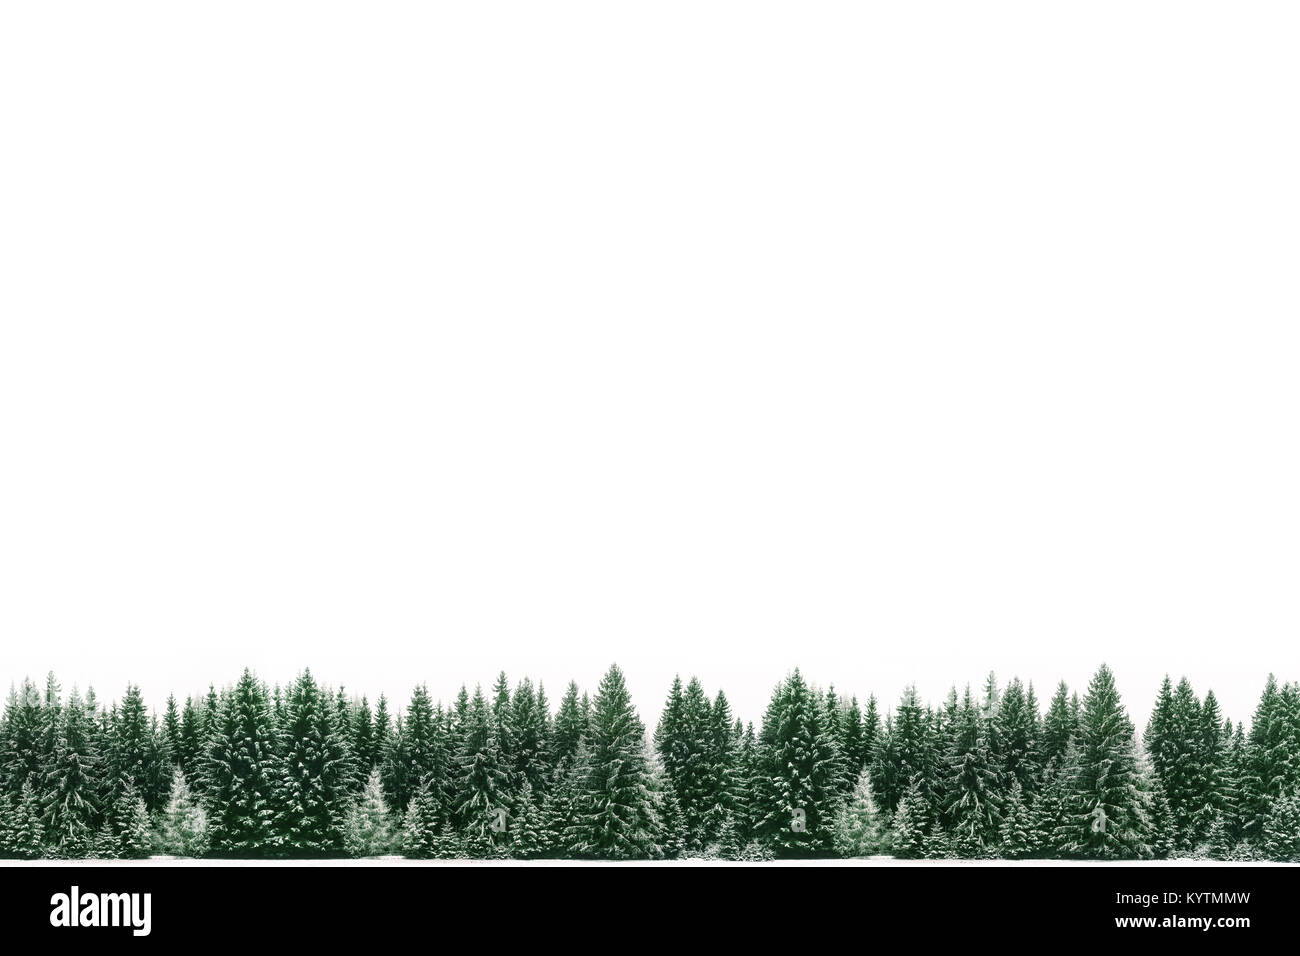 border frame of spruce tree forest covered by fresh snow during winter christmas time and new year with large empty white blank space for text